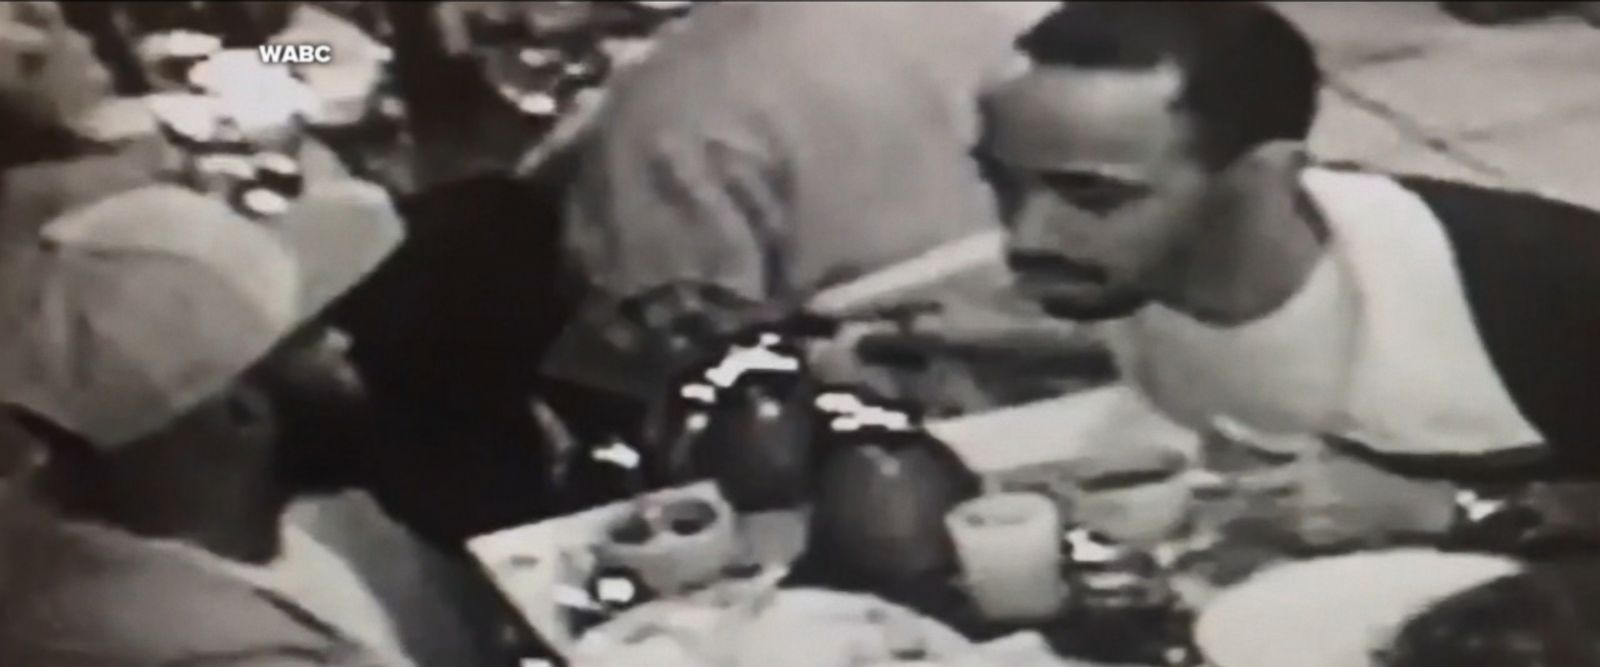 Police on the Upper East Side are searching for two suspects who have stolen purses at multiple New York City restaurants.